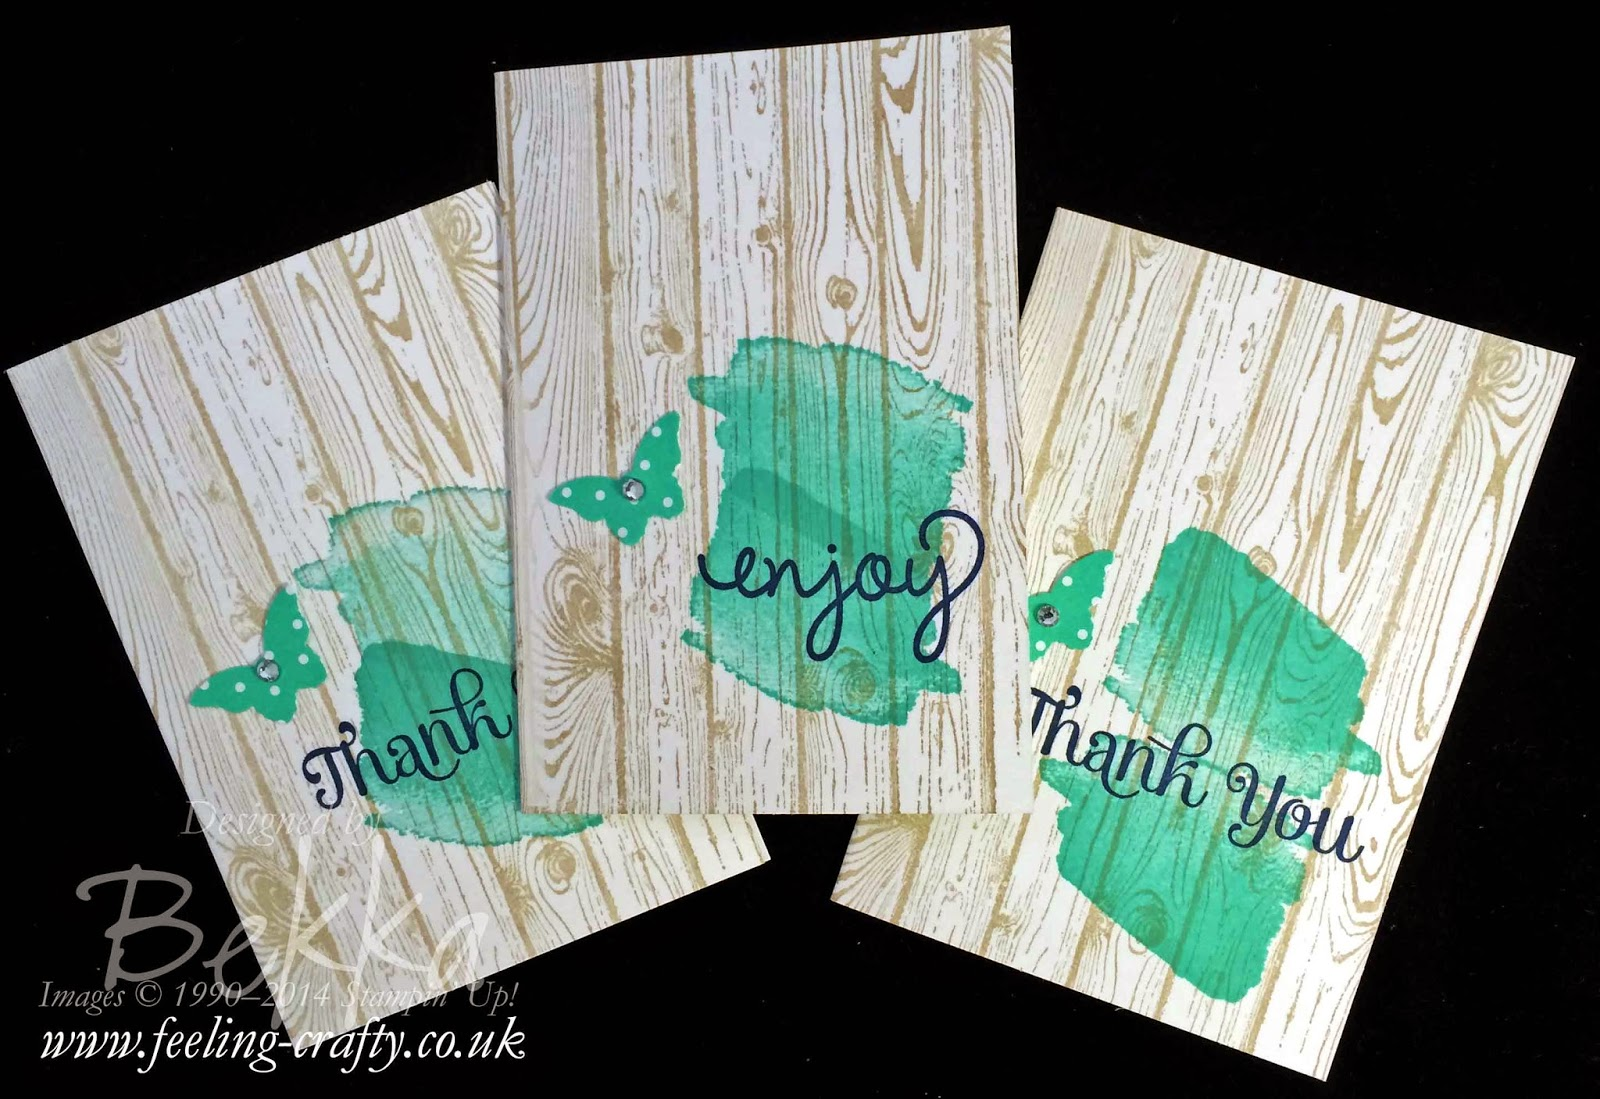 Simple Thank You Note Cards featuring Stampin' Up! Products - find out more here